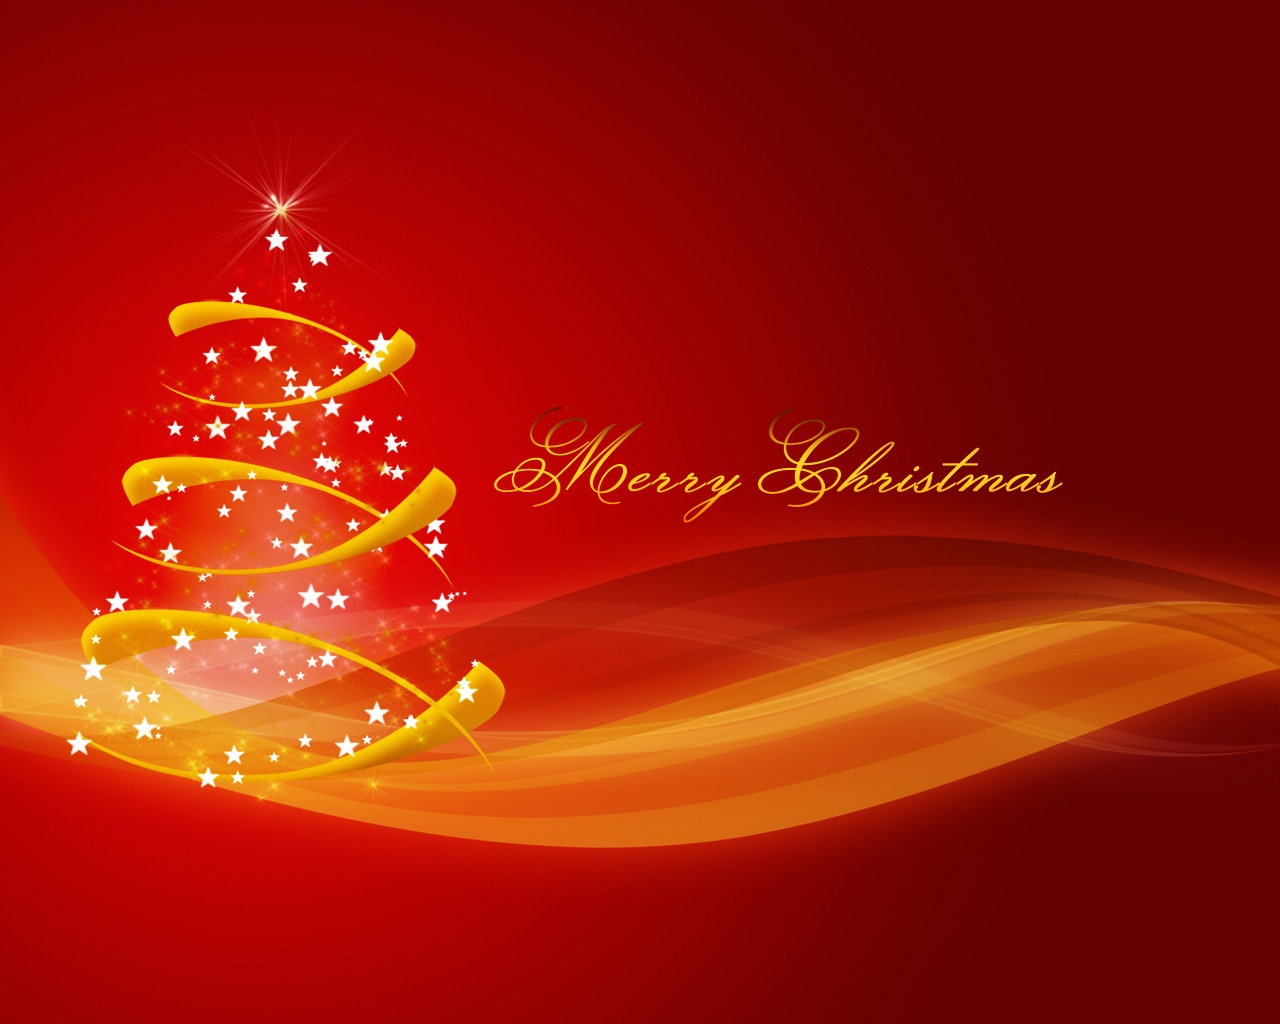 Download Wallpapers Free: Download Christmas 2010 Wallpapers